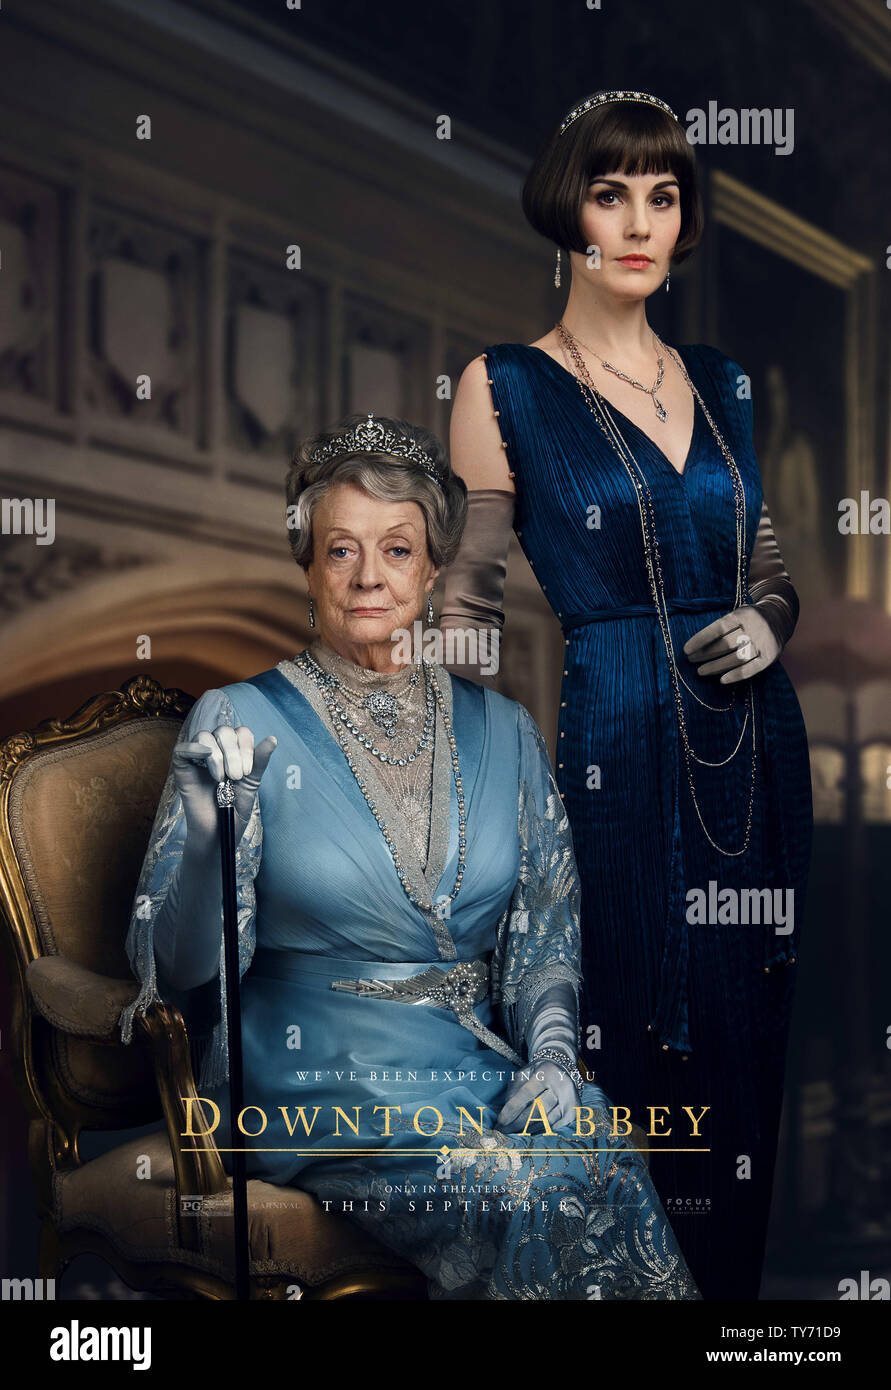 RELEASE DATE: September 20, 2019 TITLE: Downton Abbey STUDIO: Focus Features DIRECTOR: Michael Engler PLOT: Adapted from the hit TV series Downton Abbey that tells the story of the Crawley family, a wealthy owner of a large estate in the English countryside in the early 20th century. STARRING: MAGGIE SMITH as Violet Crawley, MICHELLE DOCKERY as Mary Crawley. (Credit Image: © Focus Features/Entertainment Pictures) - Stock Image